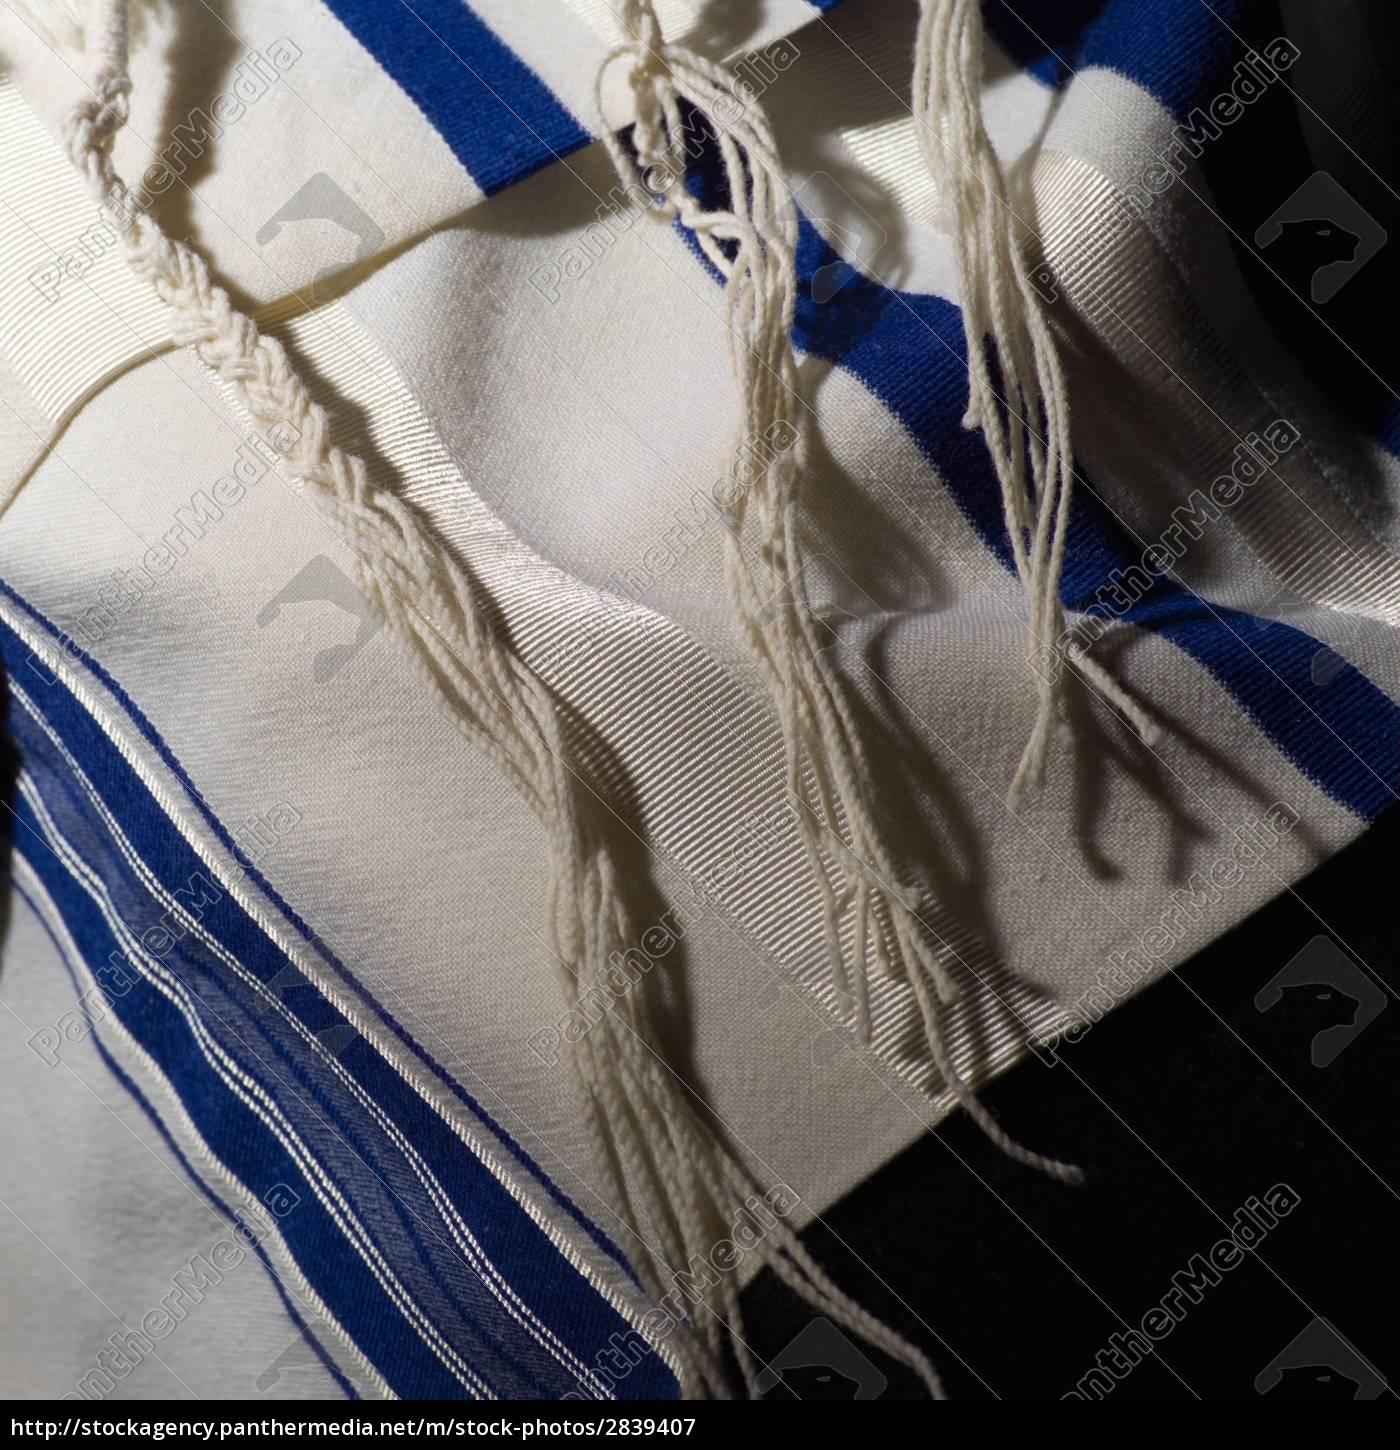 judaica, symbols, -, prayer, shawl - 2839407